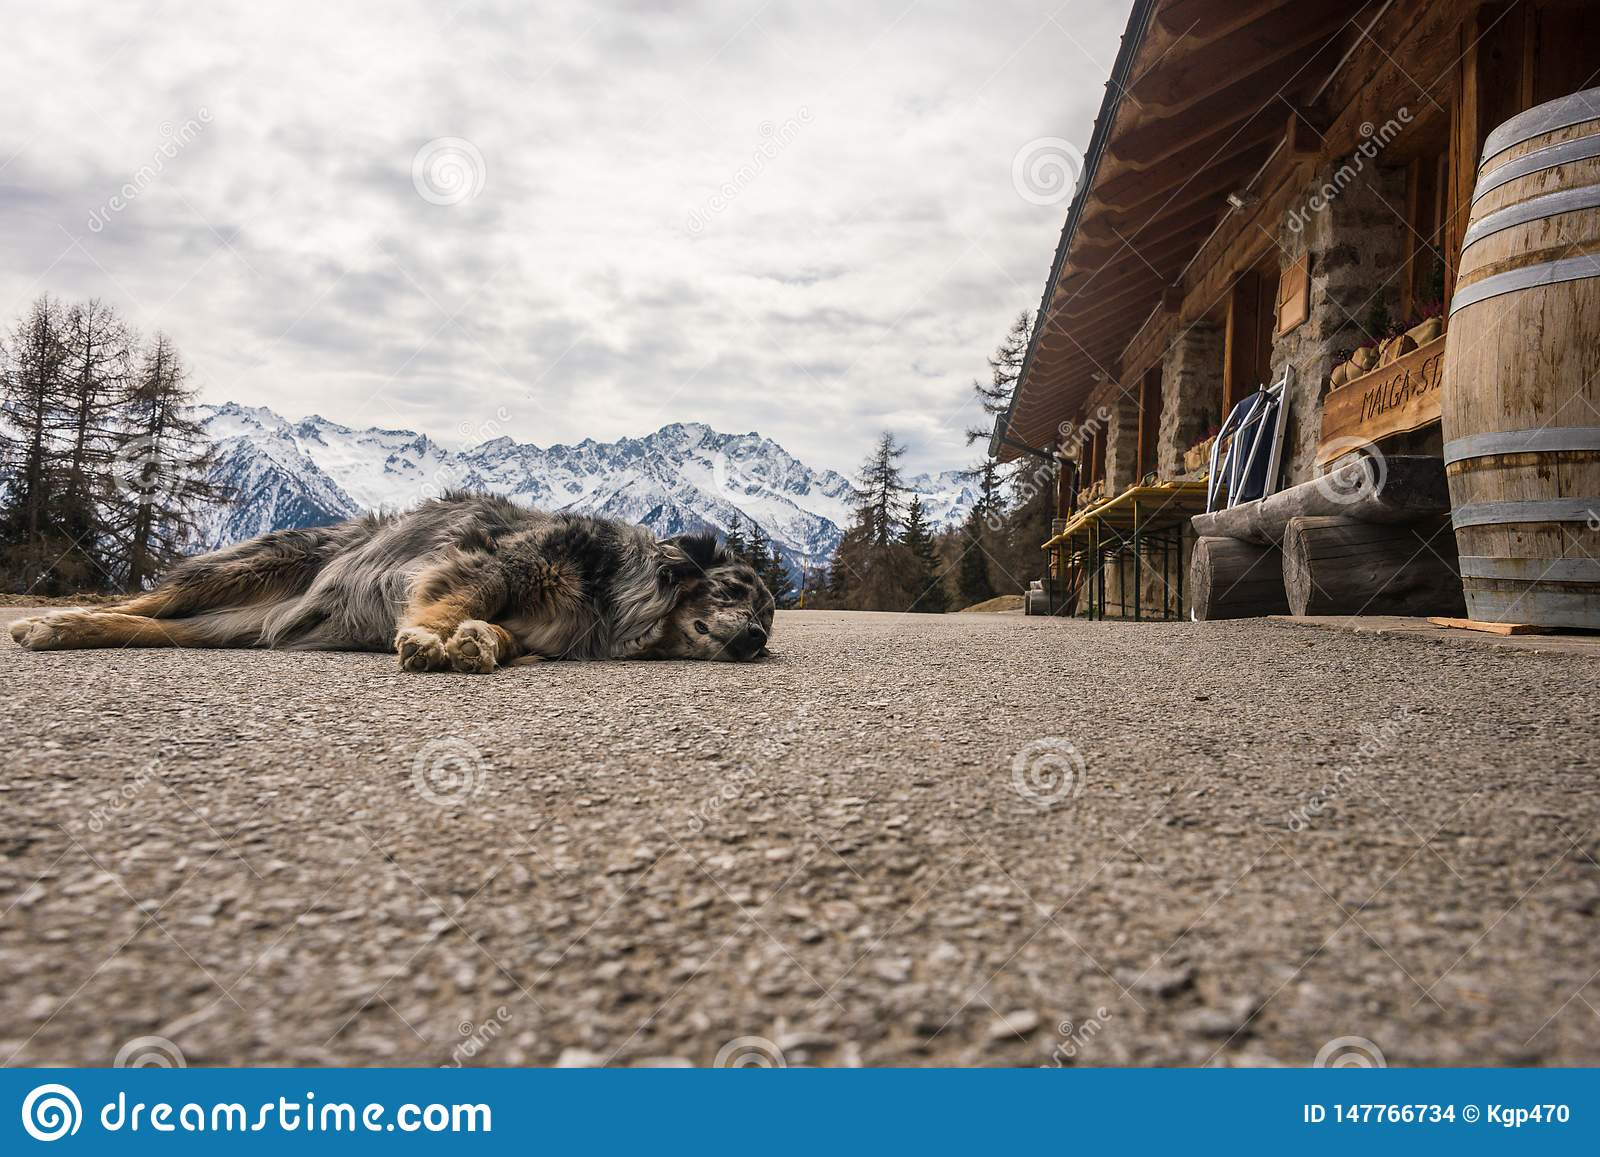 Dog sleeping on mountain road. Snow-capped mountains at the background.